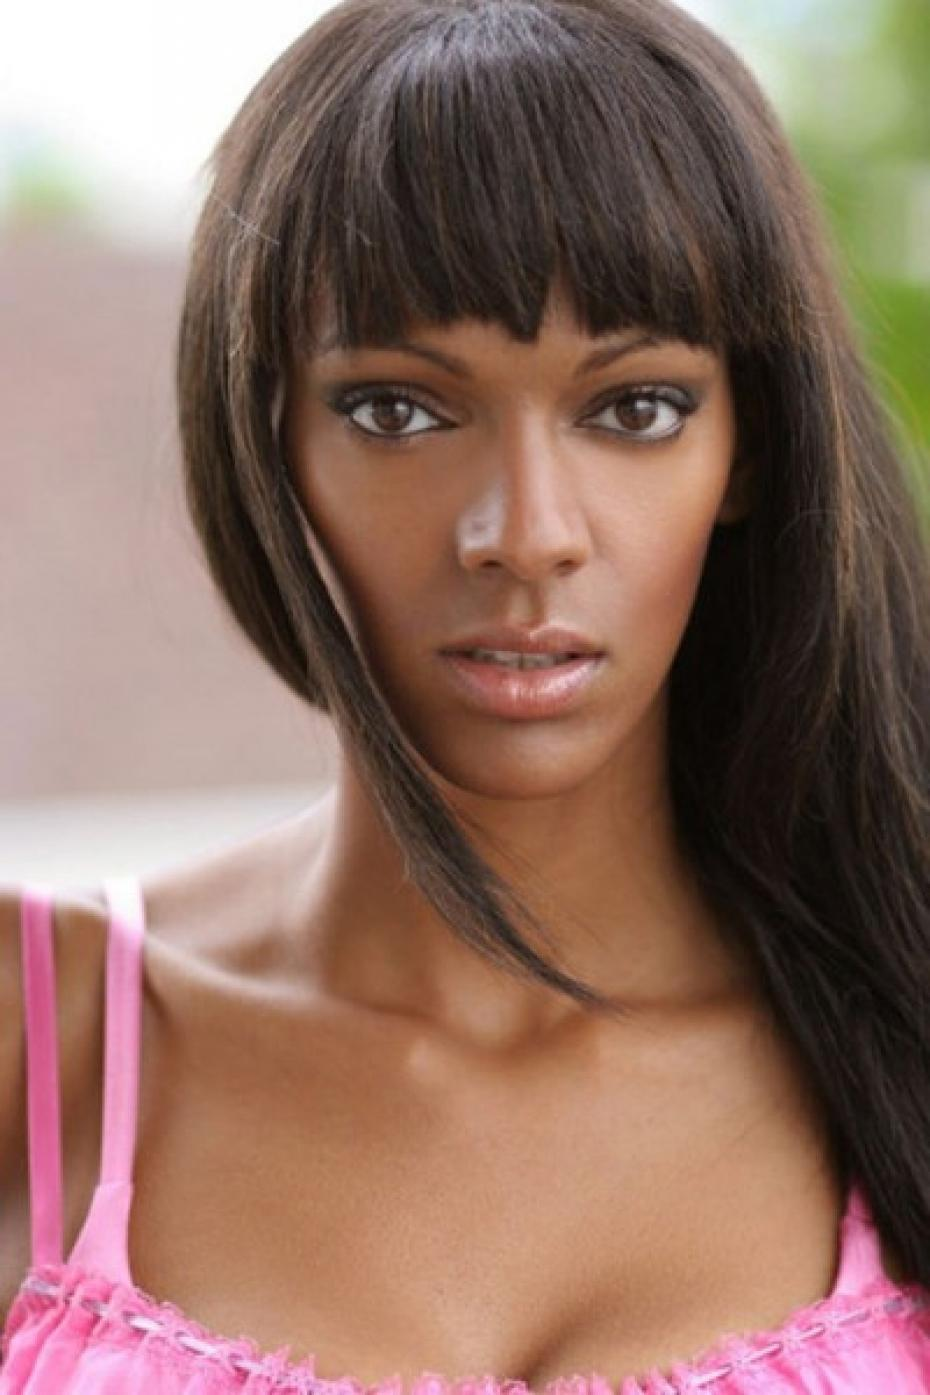 British Actress Judith Shekoni Has Been Cast in NBC's 'Heroes' Reboot (Coming in 2015) | IndieWire